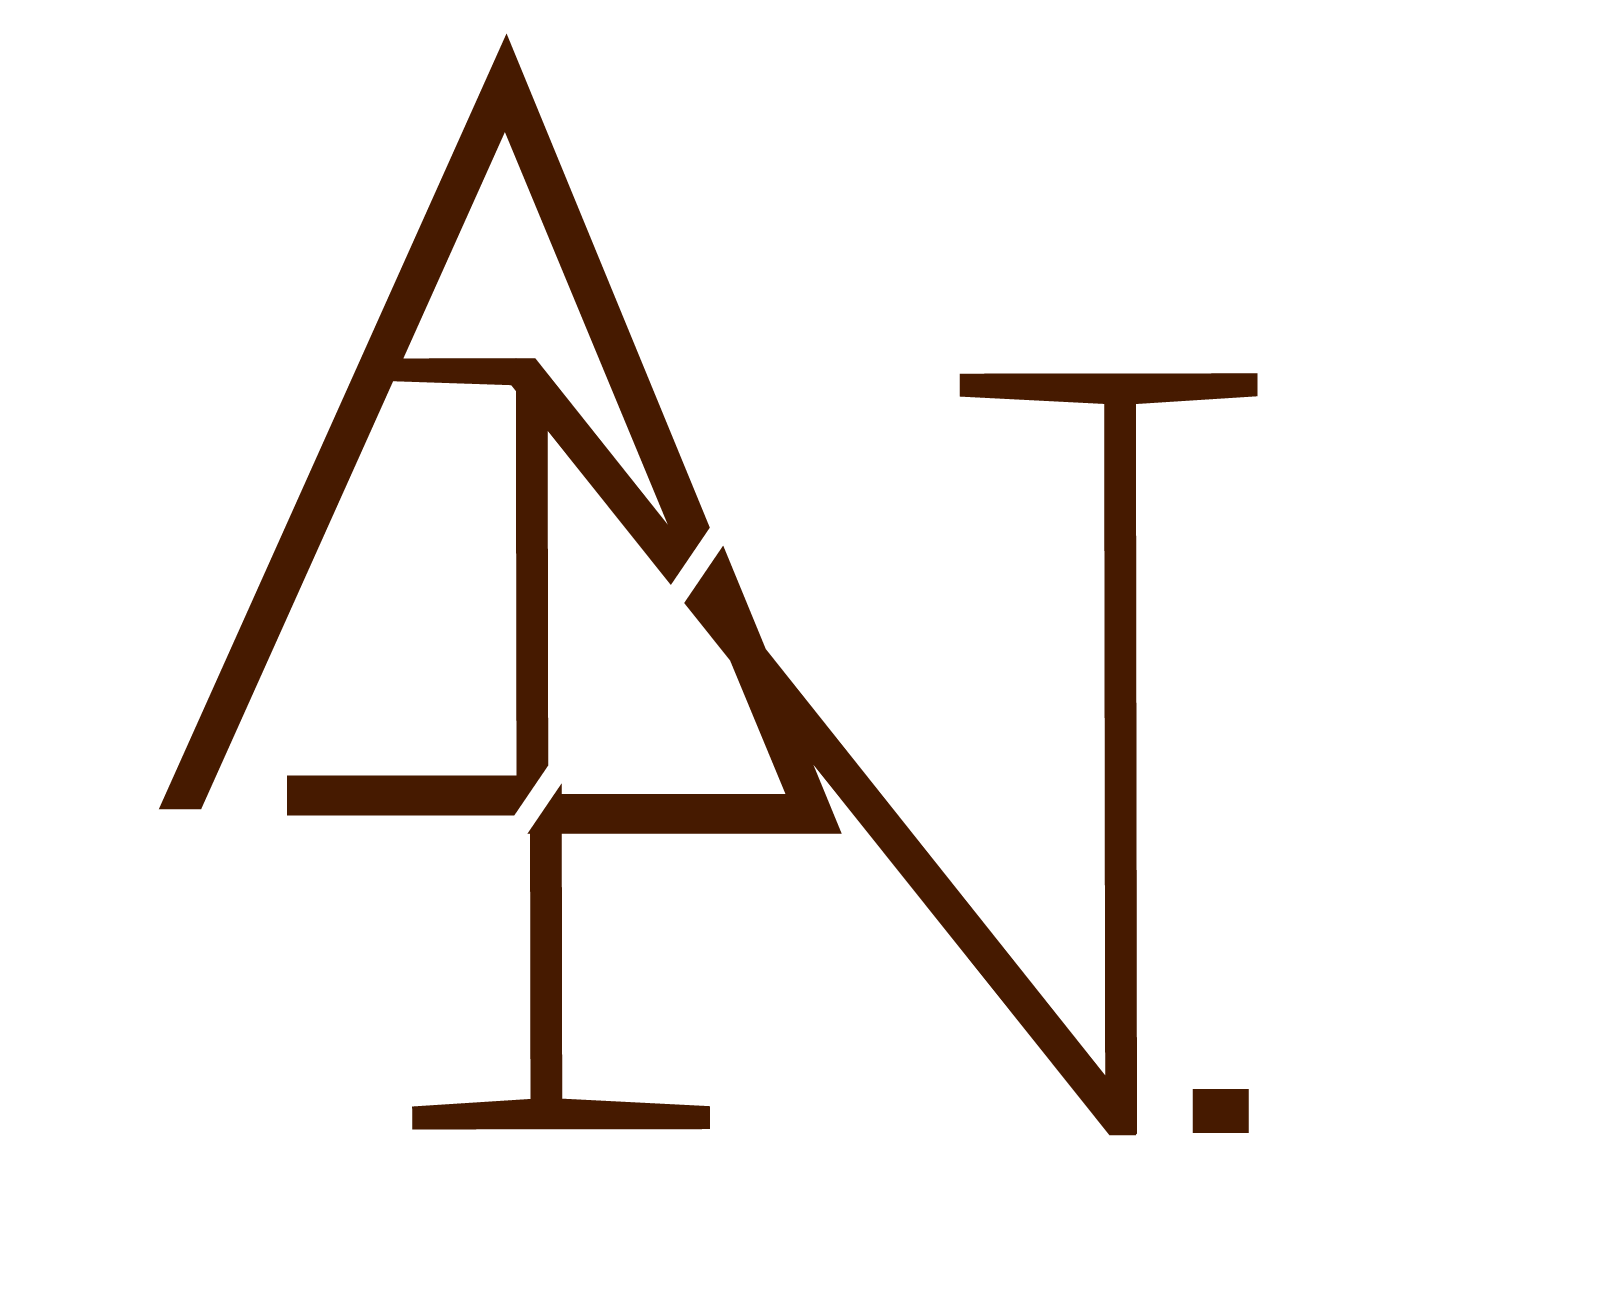 the initials A and N